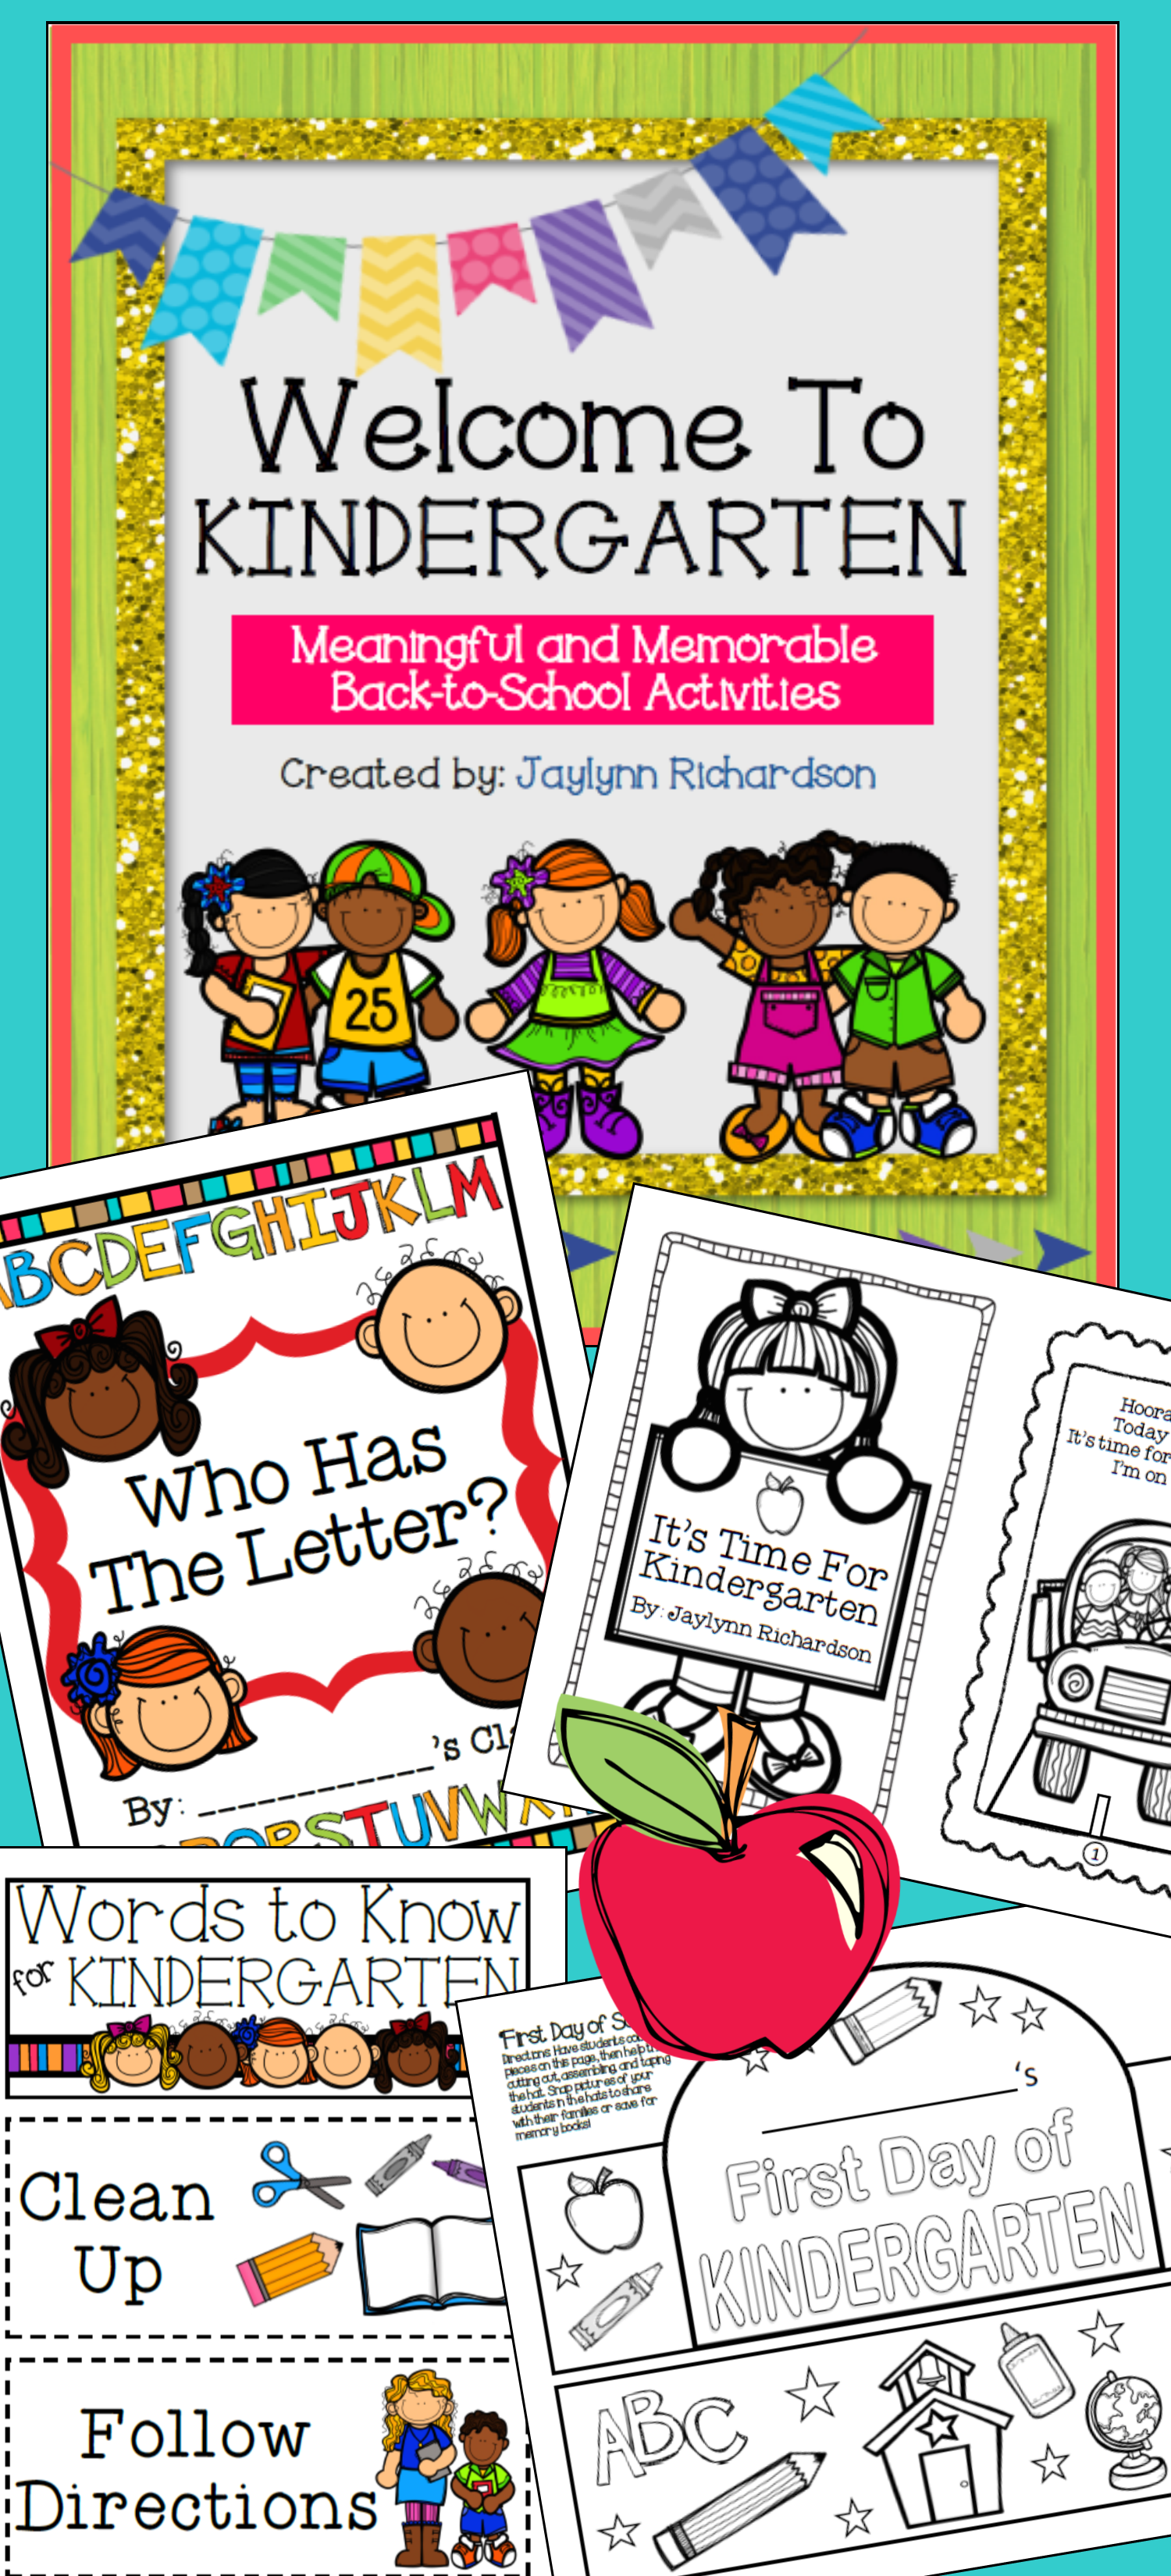 Welcome Kindergarten Students With These Easy To Use Fun And Memorable Activities